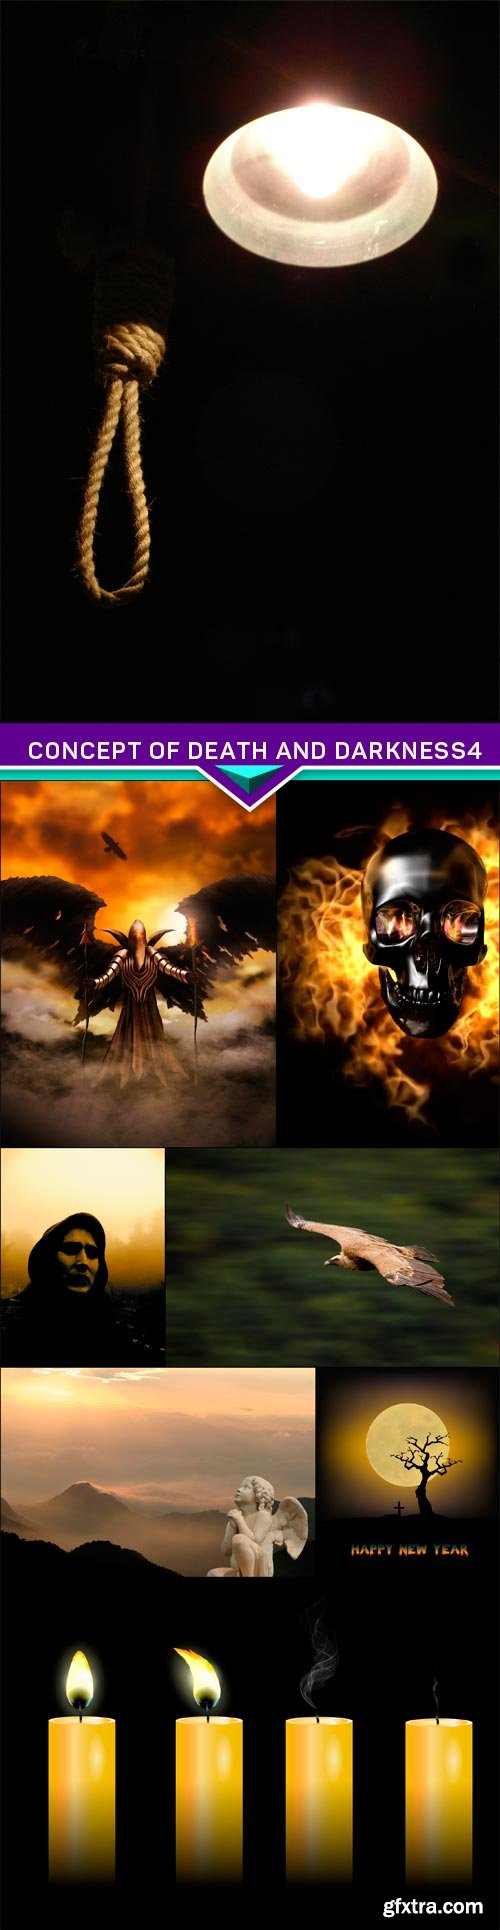 Concept of death and darkness4 8x JPEG